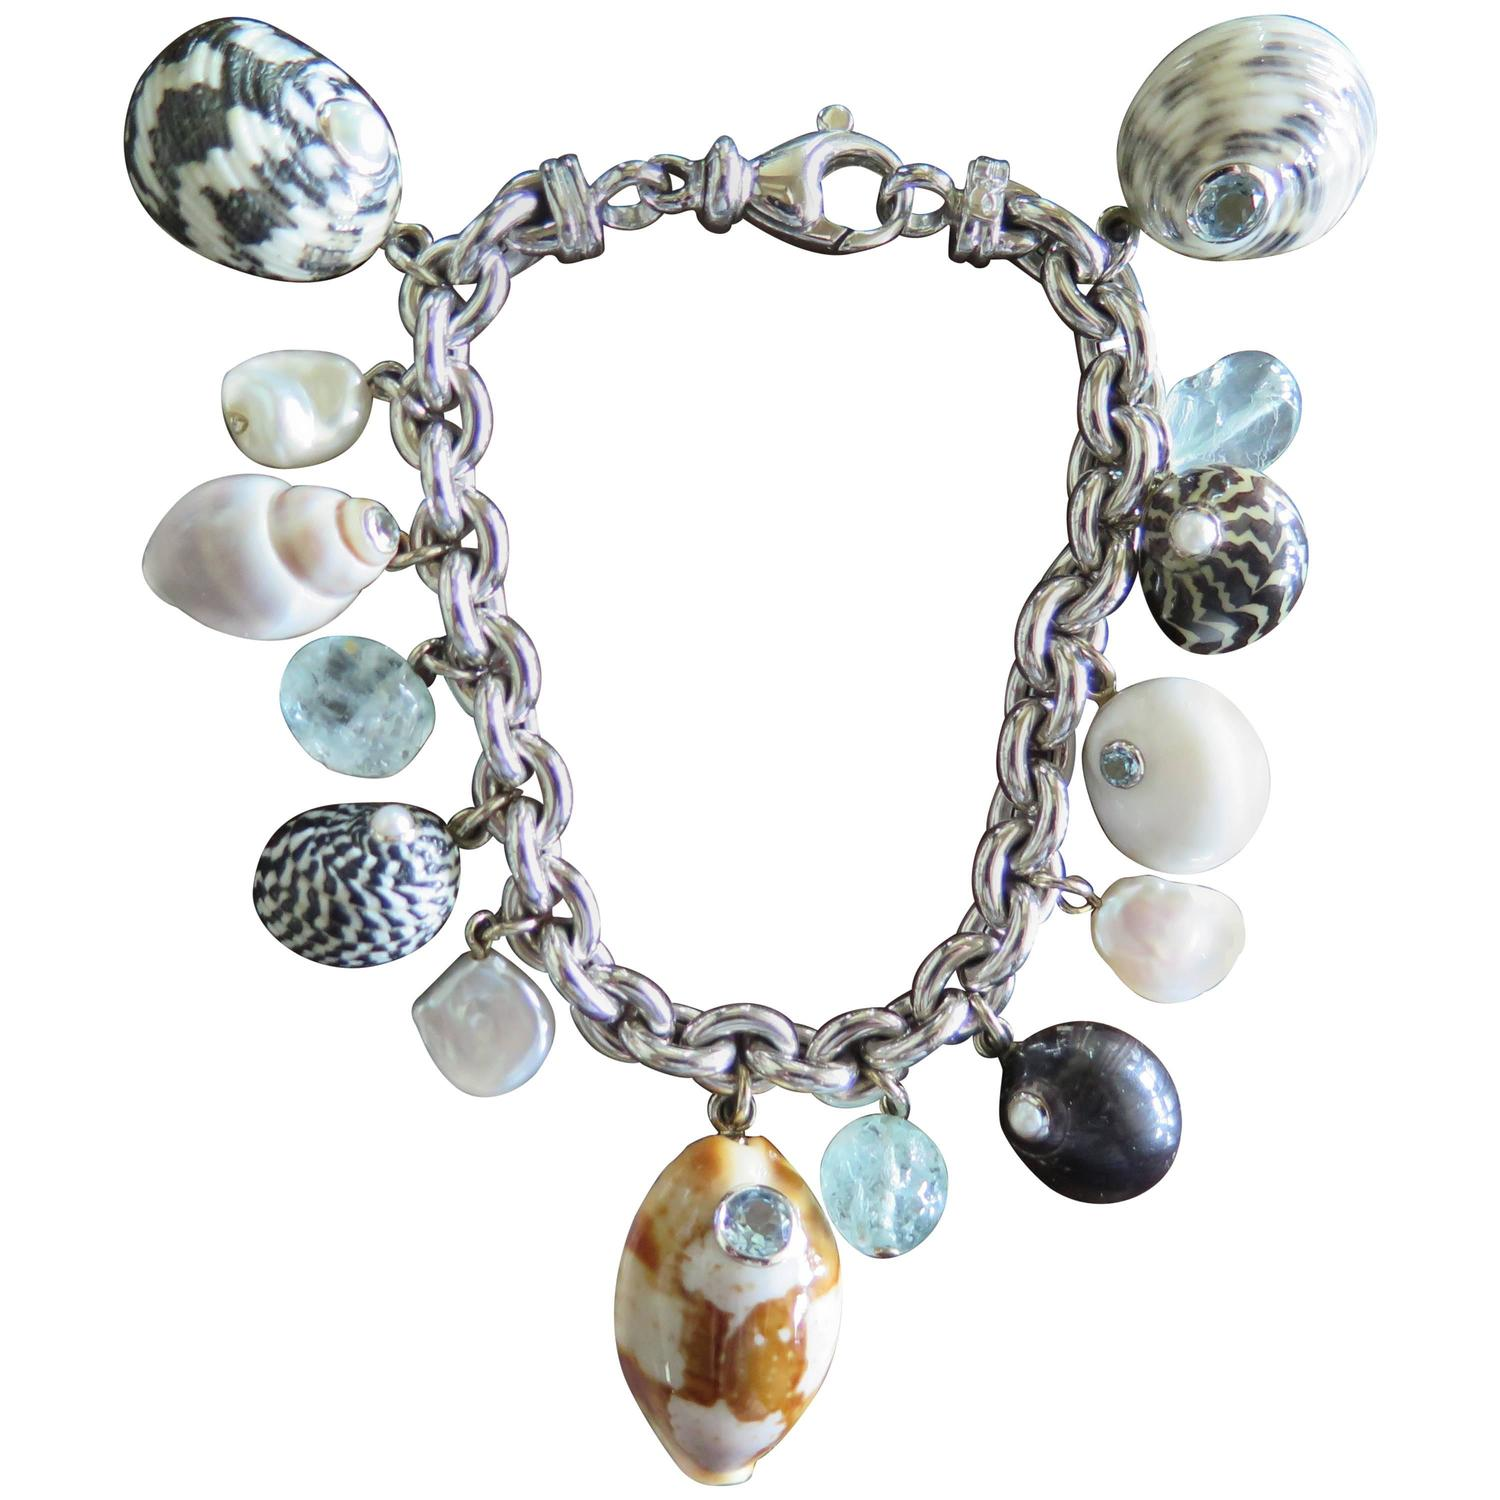 Seashell Charm Bracelet: Trianon Gemstone Gold Sea Shell Charm Bracelet For Sale At